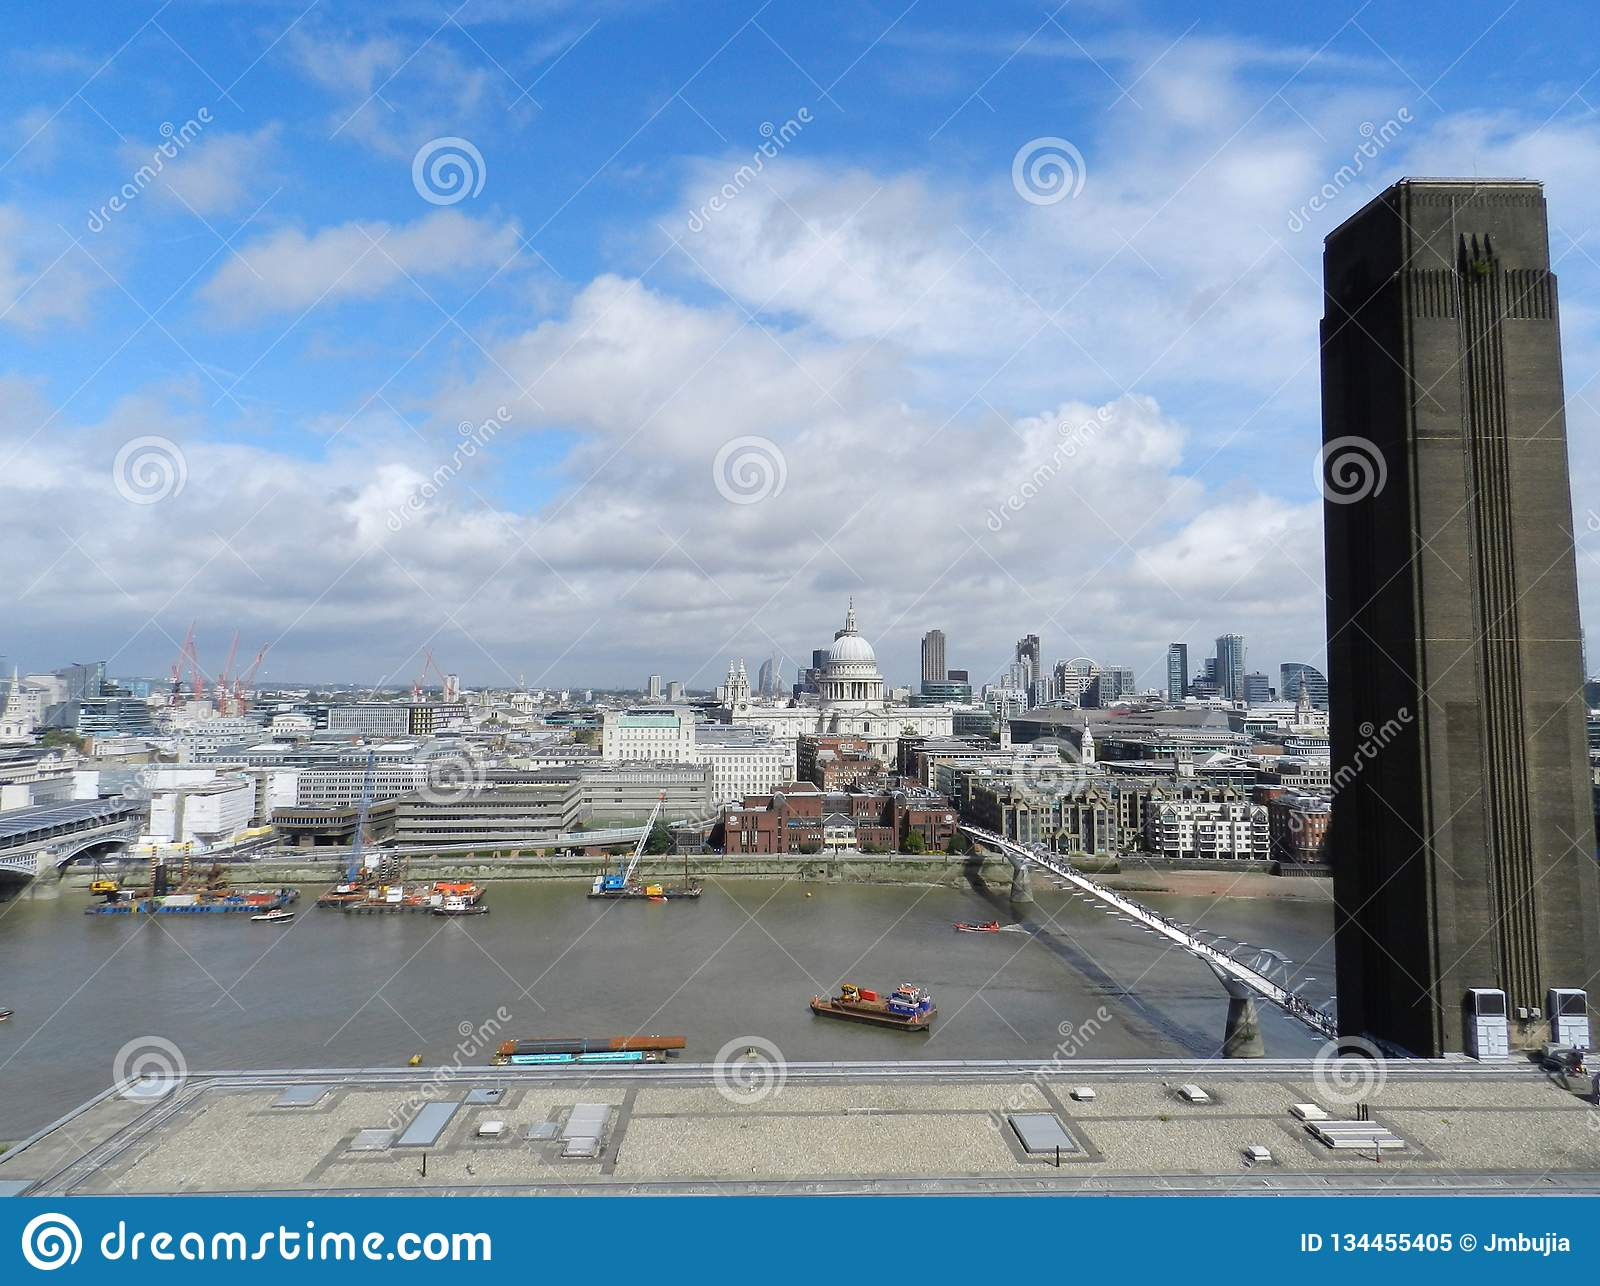 London, United Kingdom. Millenium Bridge, St. Paul's Cathedral and the City from Tate Modern viewpoint.